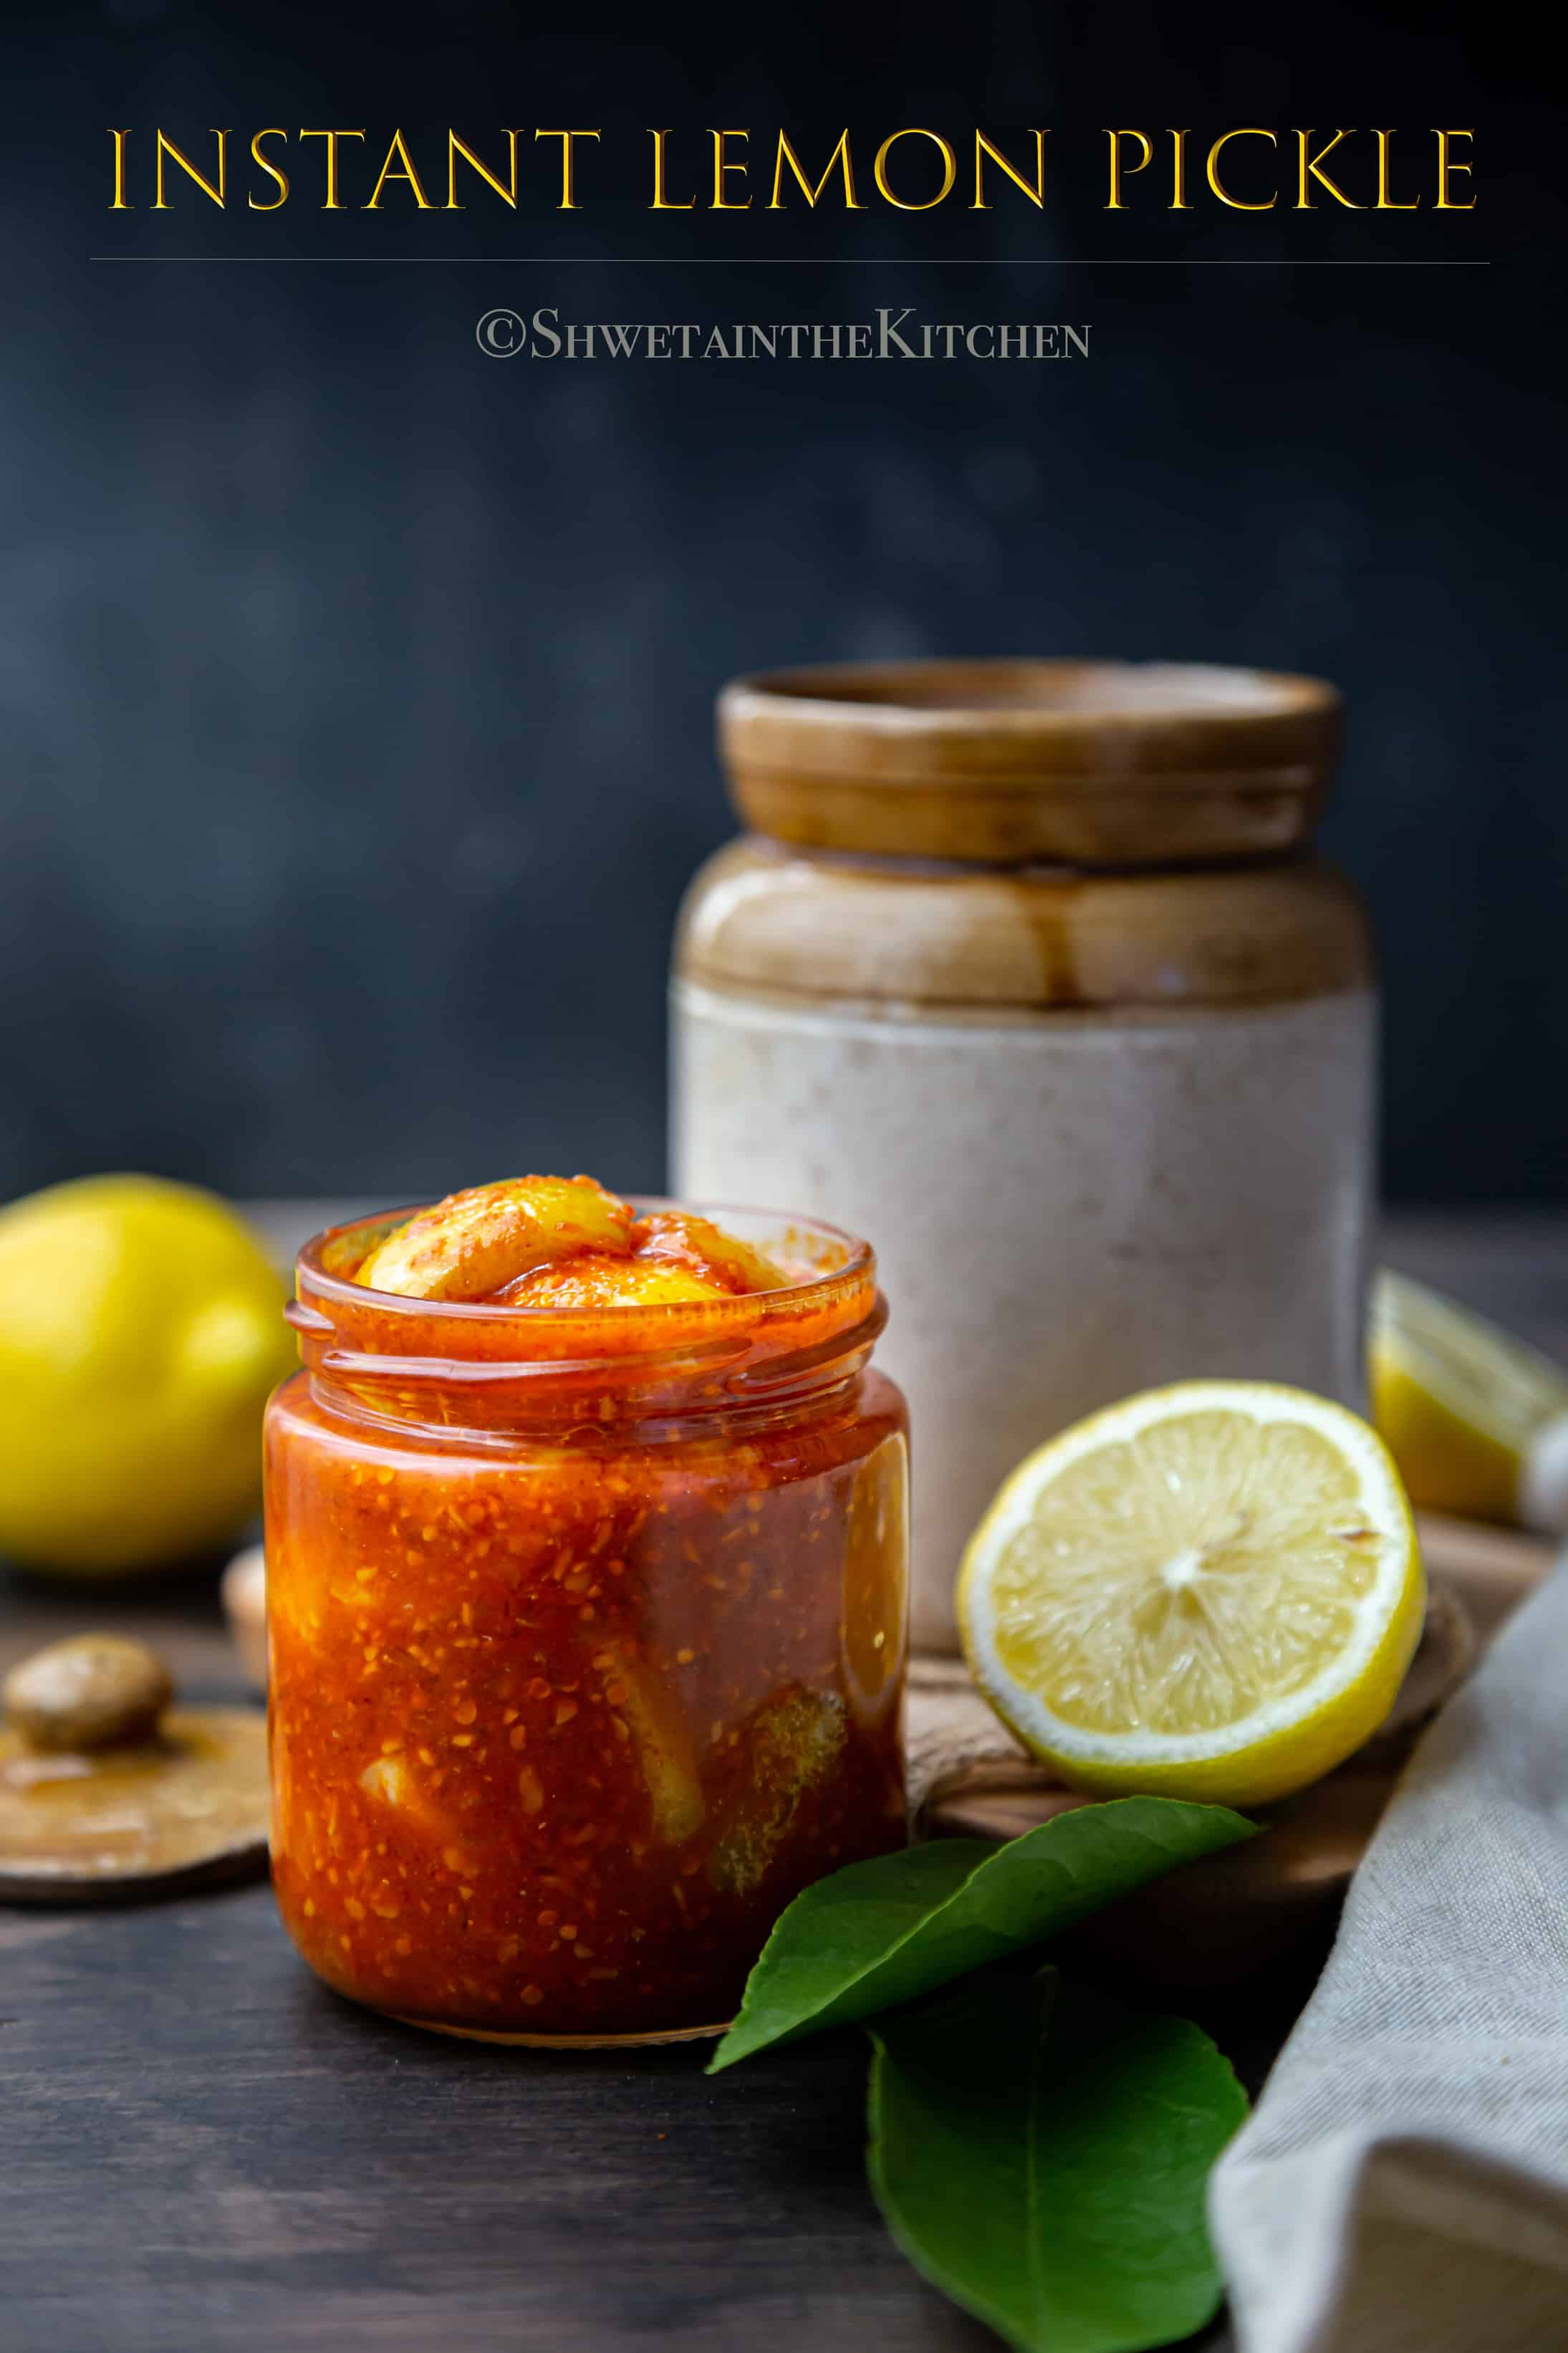 Another jar full of Instant Lemon Pickle with Ceramic jar and cut lemon on side